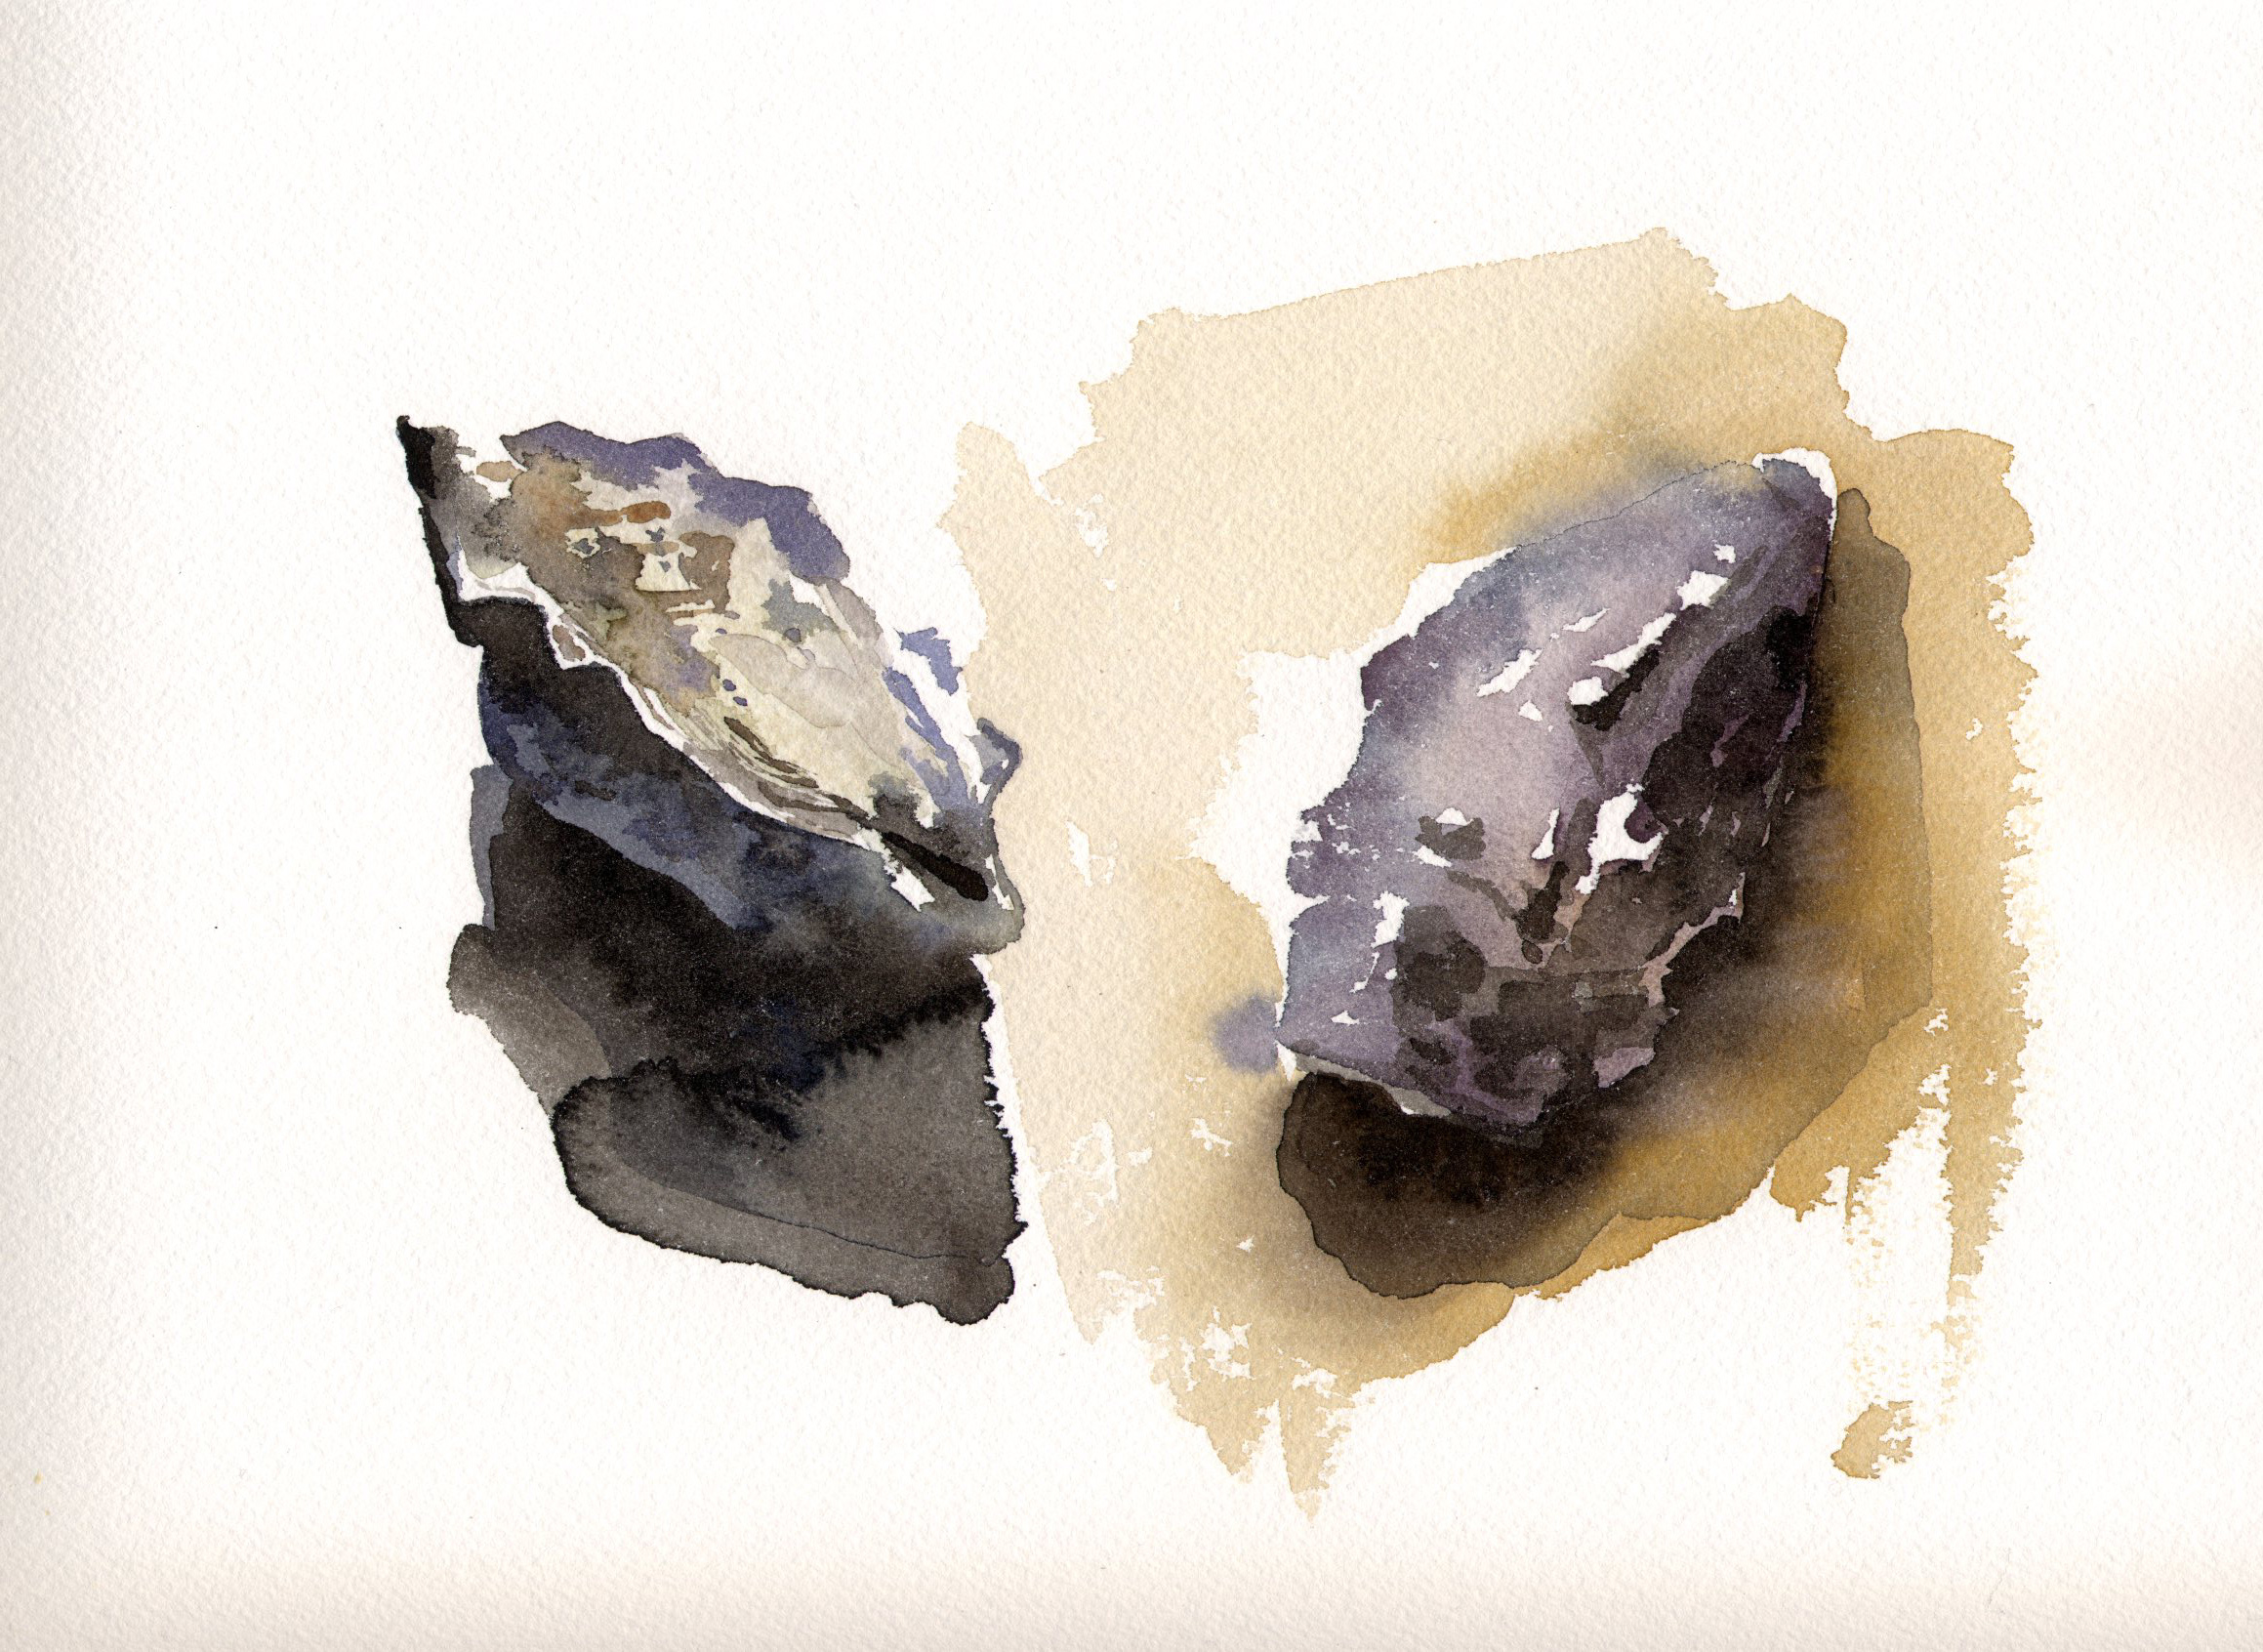 Watercolor Oyster Shells 1.jpg